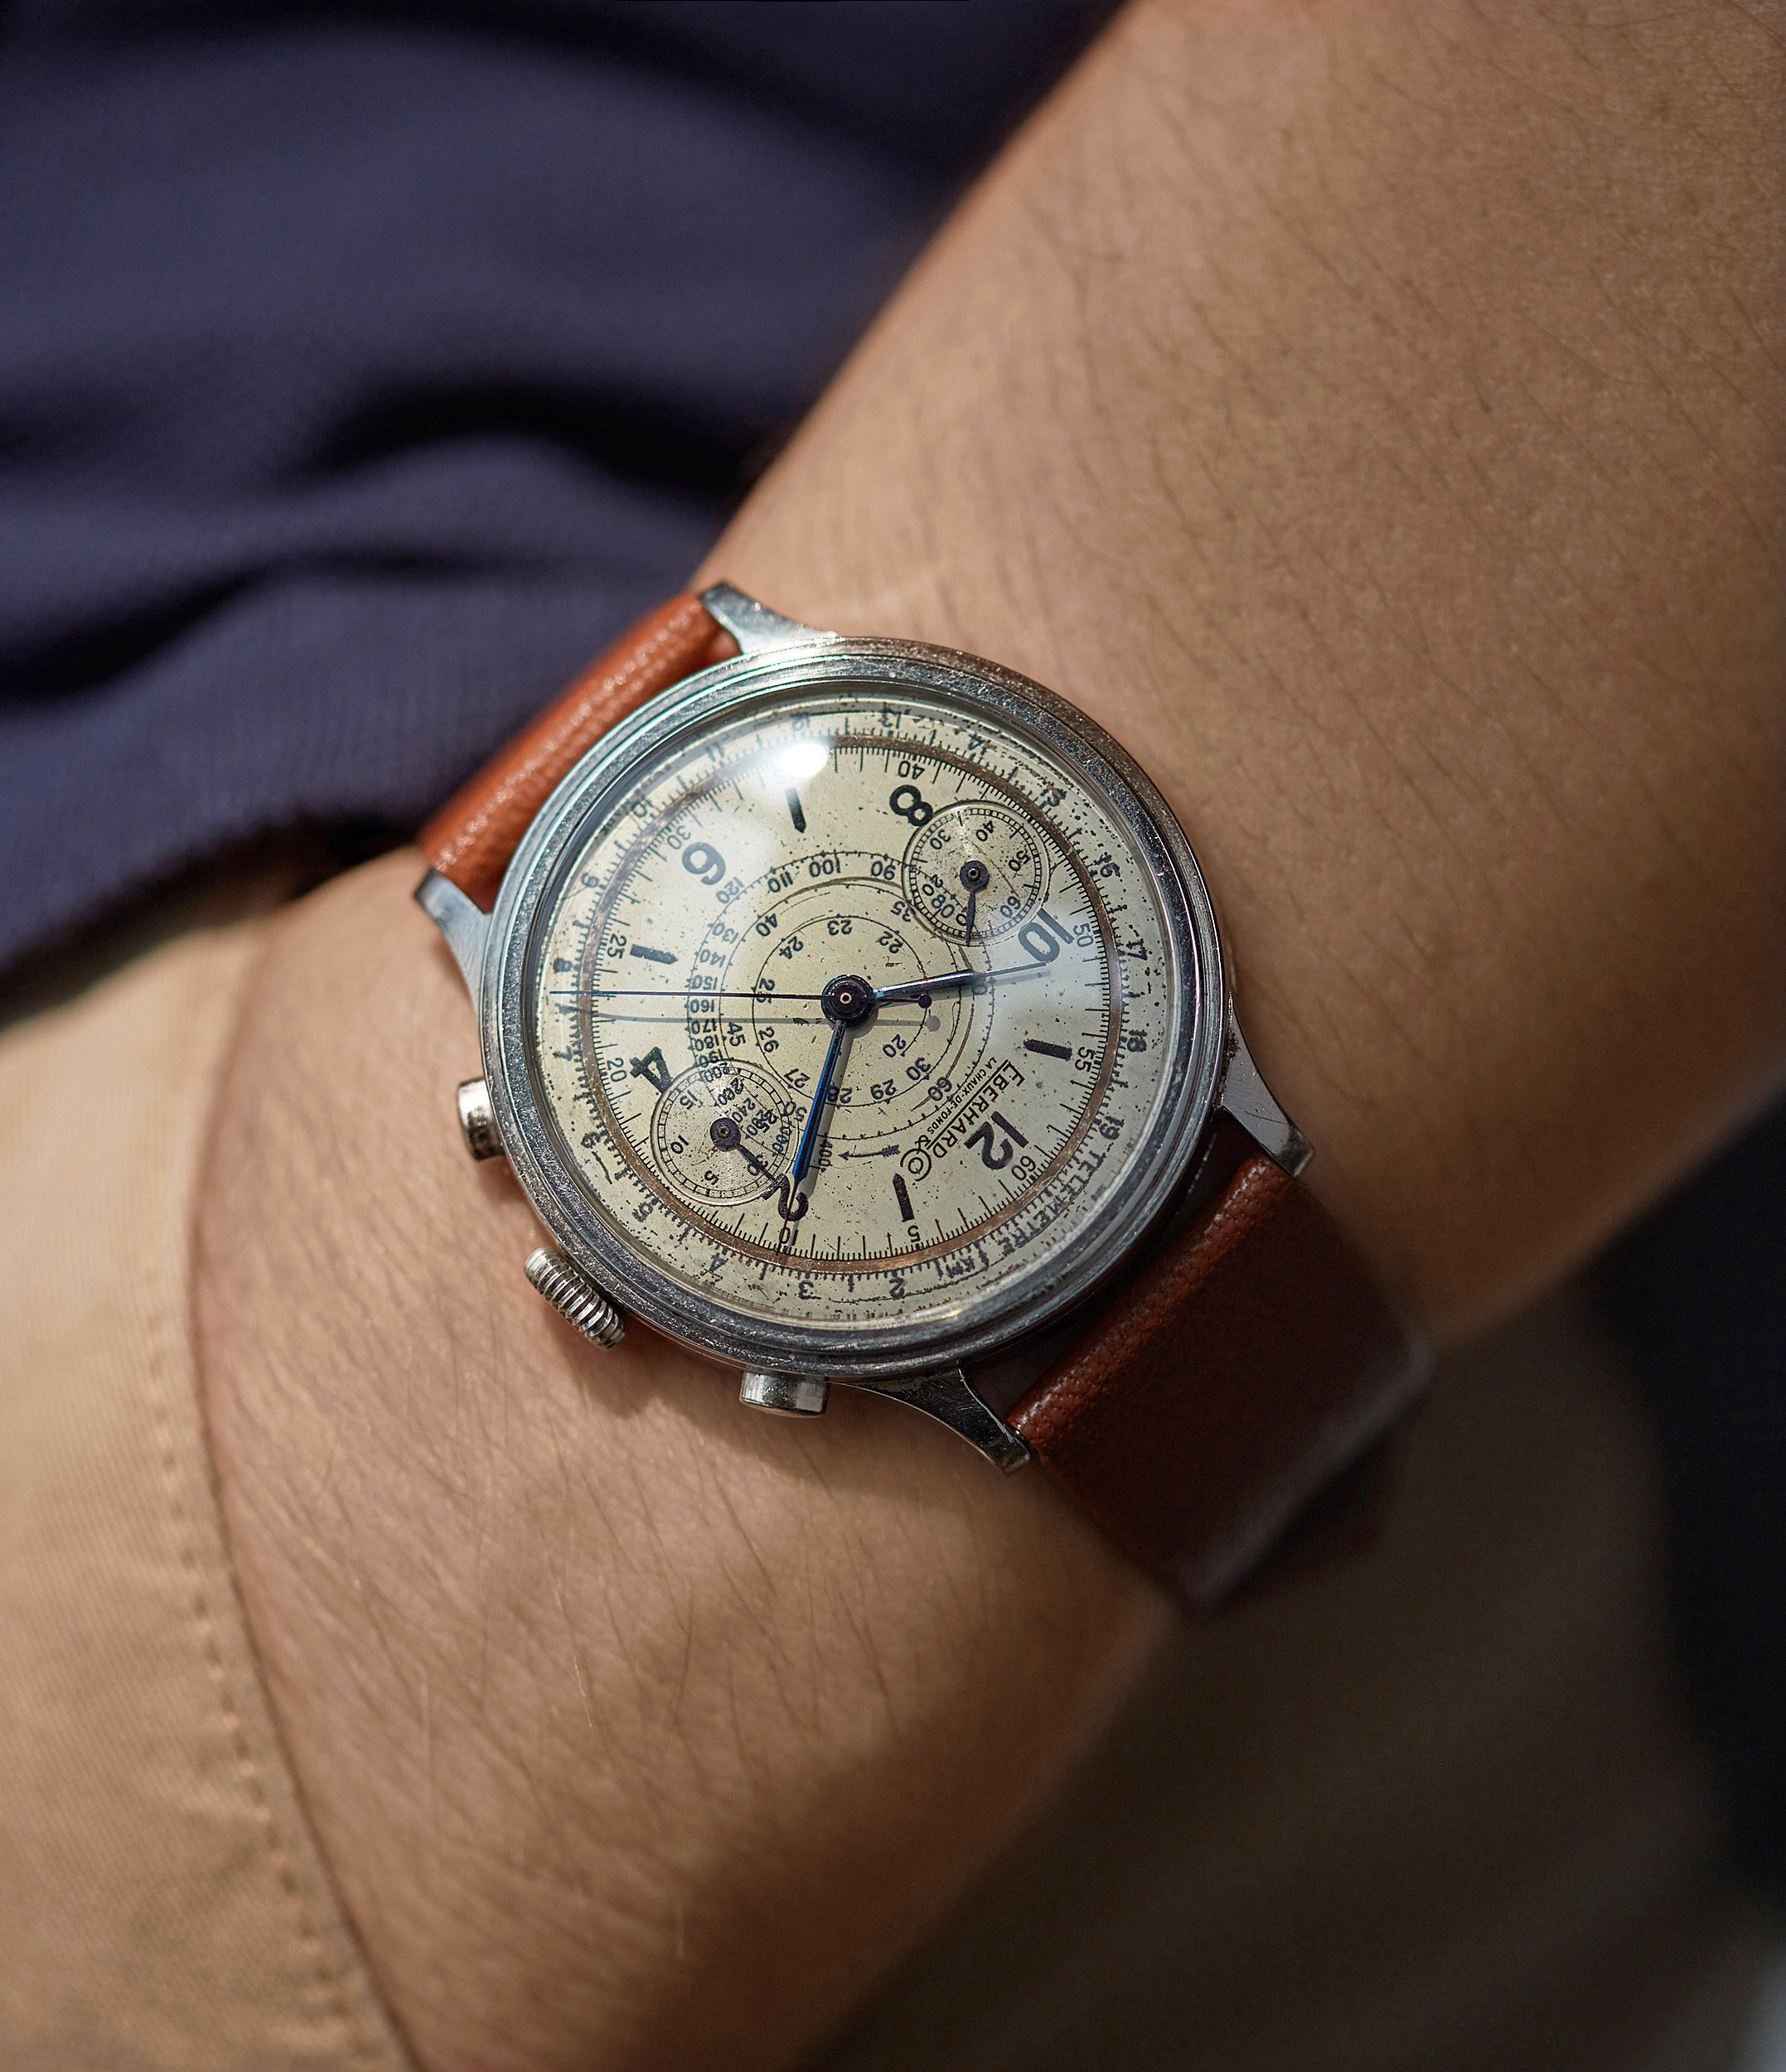 hands on Eberhard Pre-Extra Fort Chronograph copper ring dial steel sport watch for sale online at A Collected Man London UK specialist of rare watches